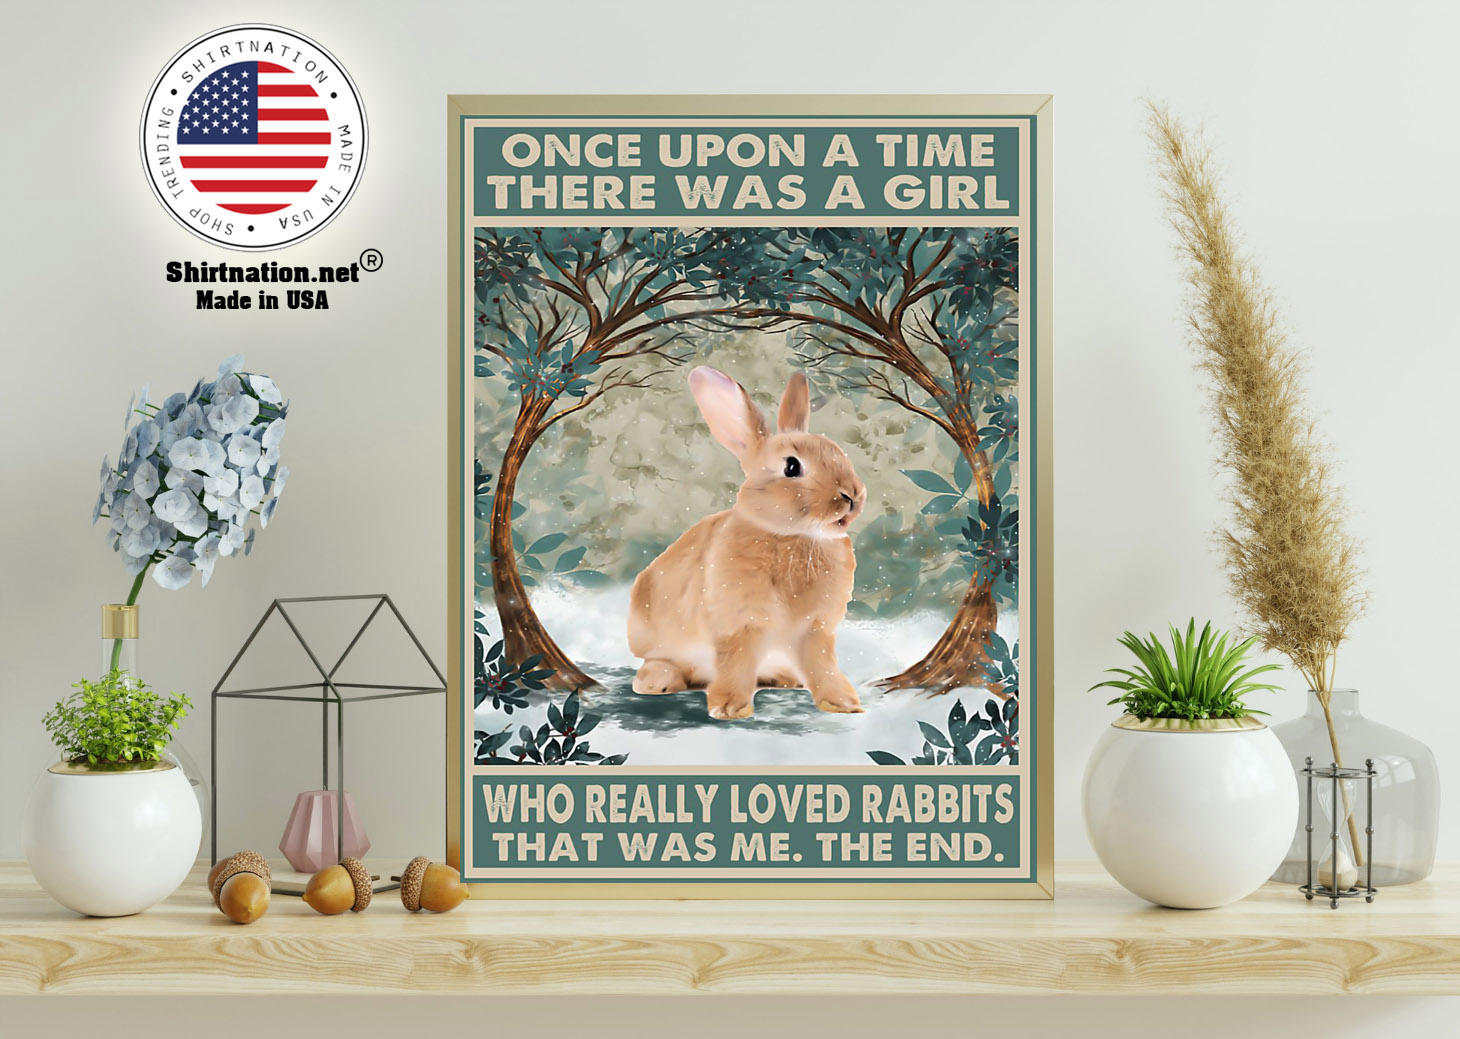 Once upon a time there was a girl who really loved rabbits poster 9